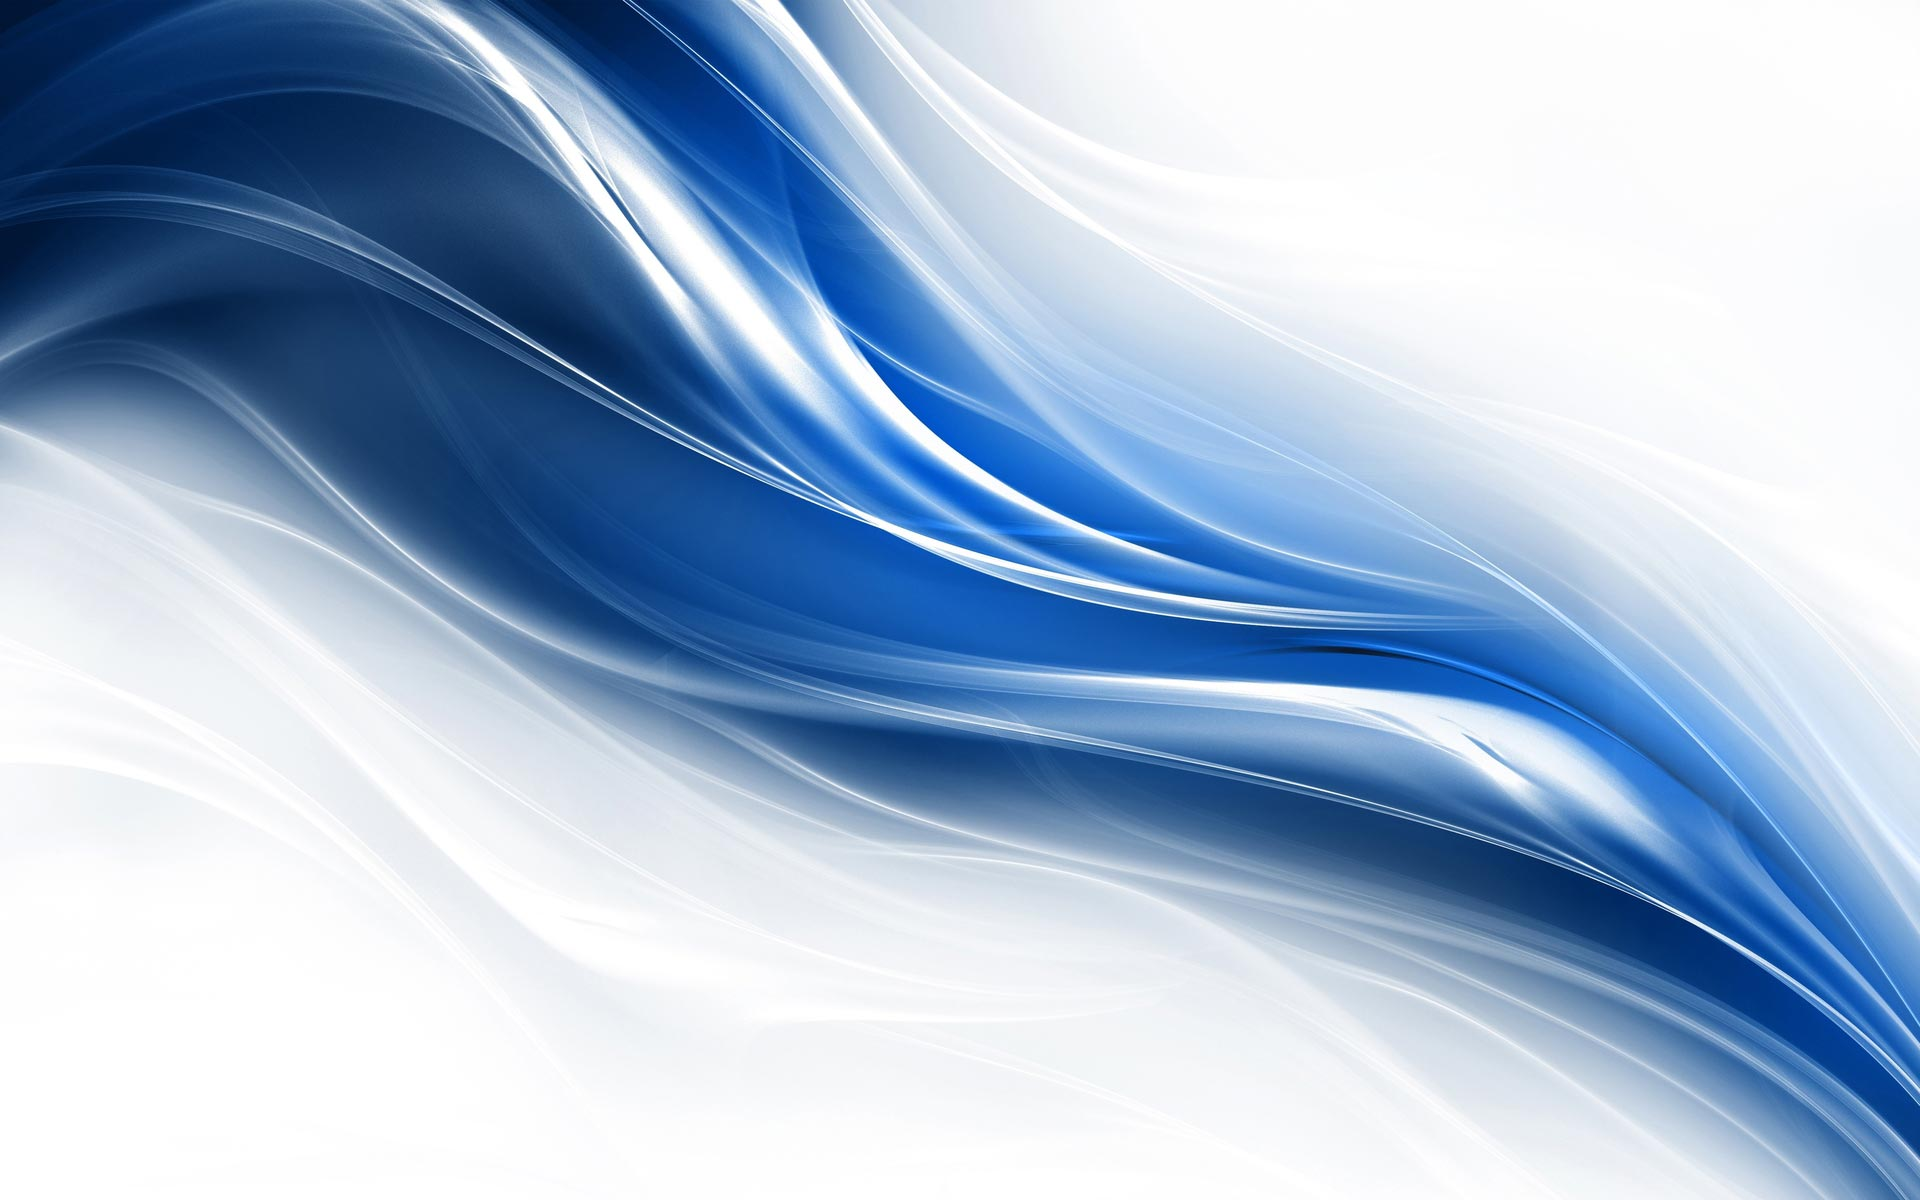 Blue Wallpaper   Abstract White And Blue   1920x1200   Download HD 1920x1200